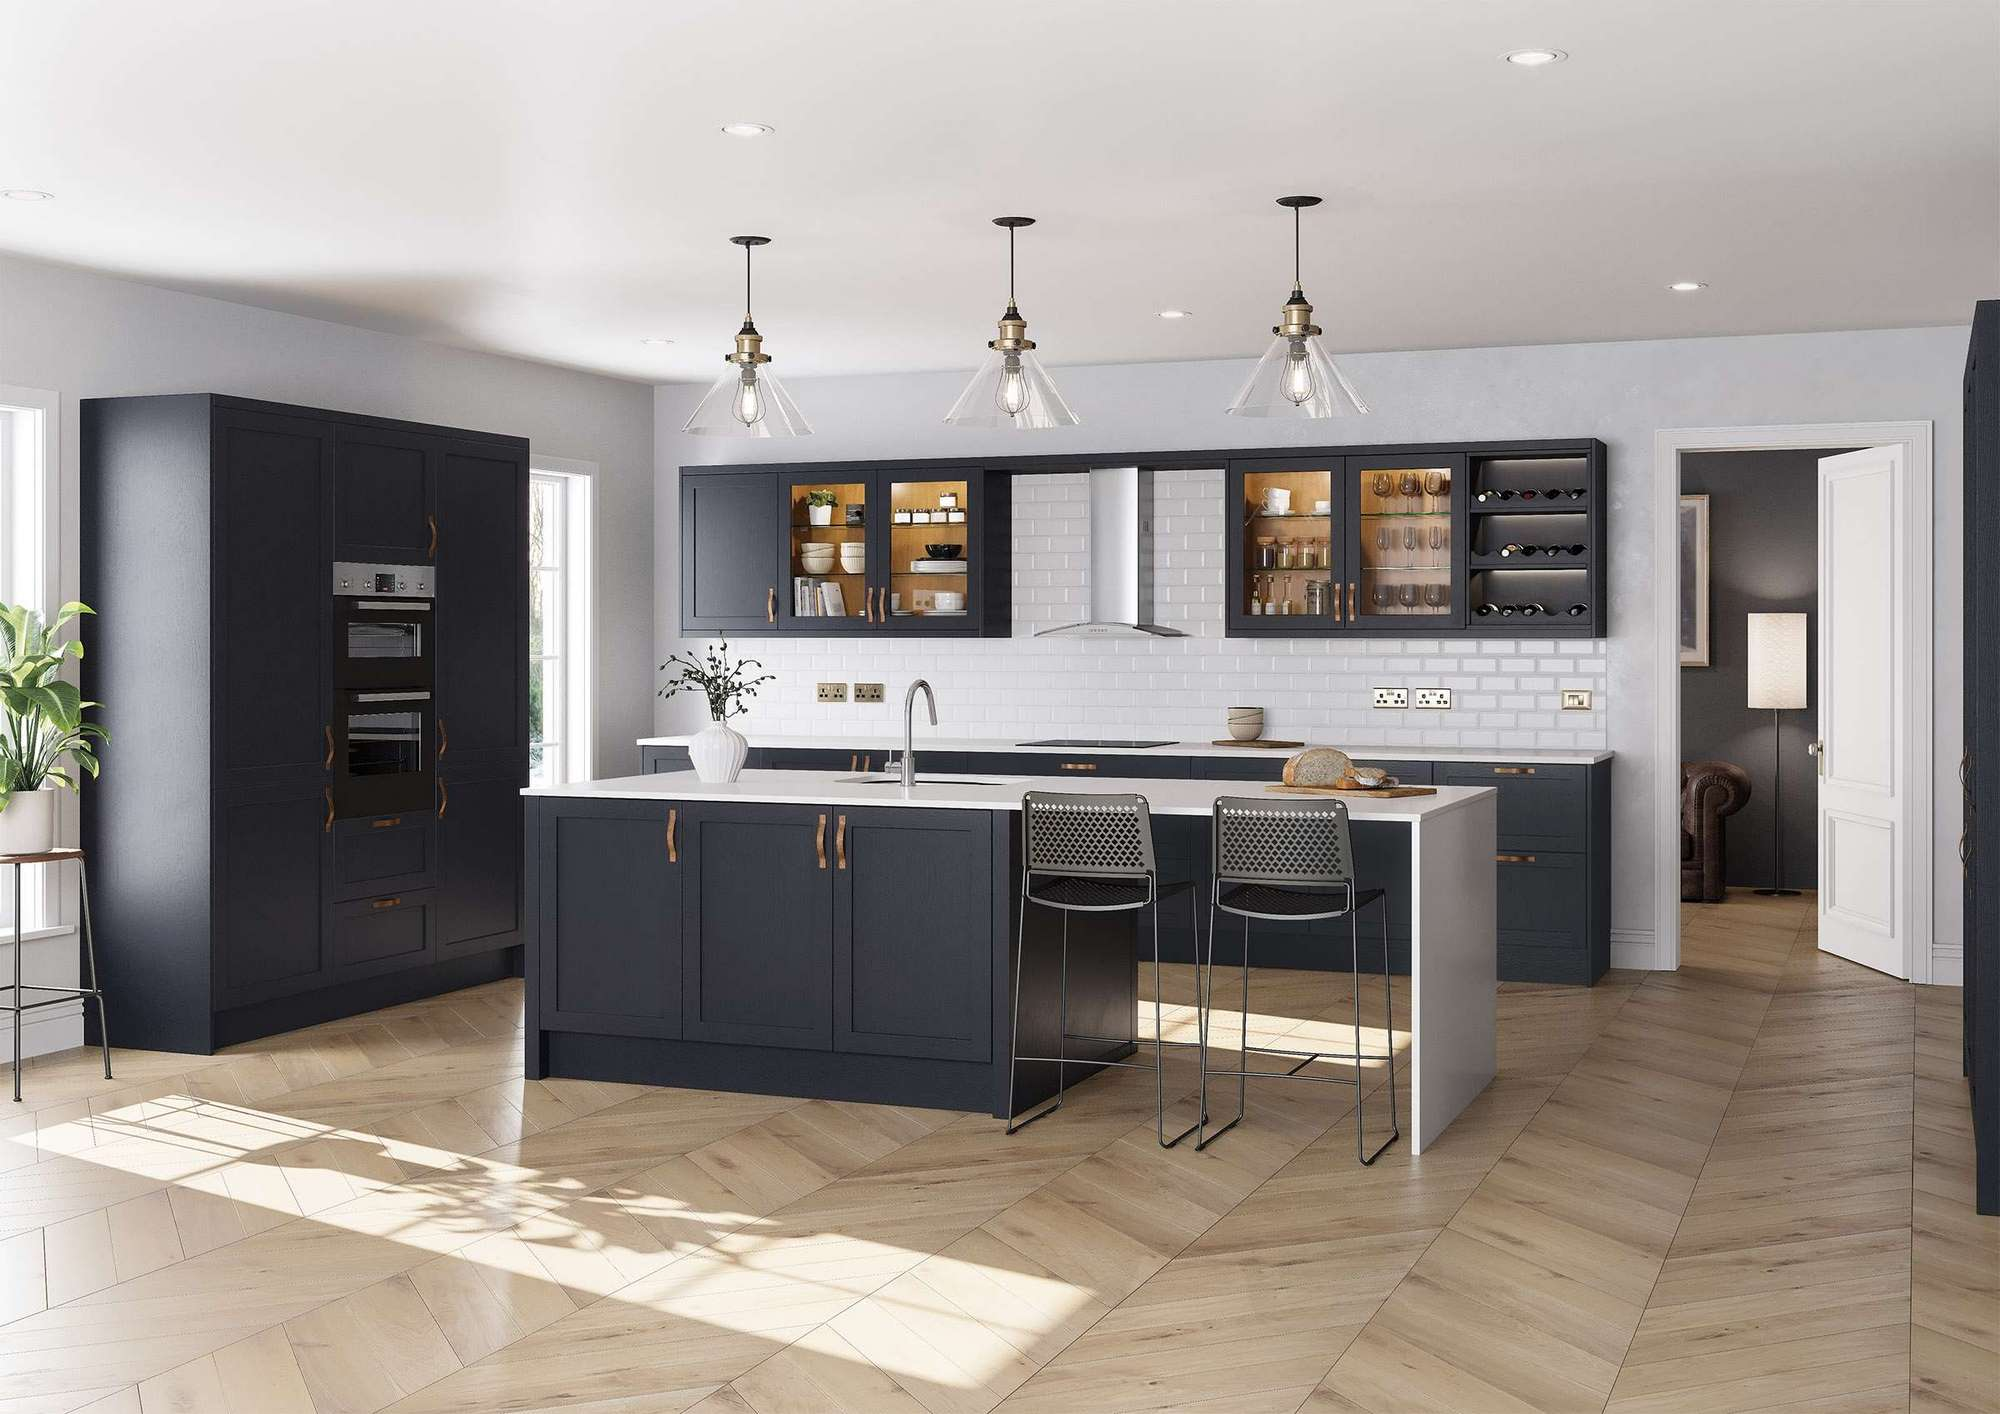 Cost Guide for a New Fitted Kitchen UK 2021 image